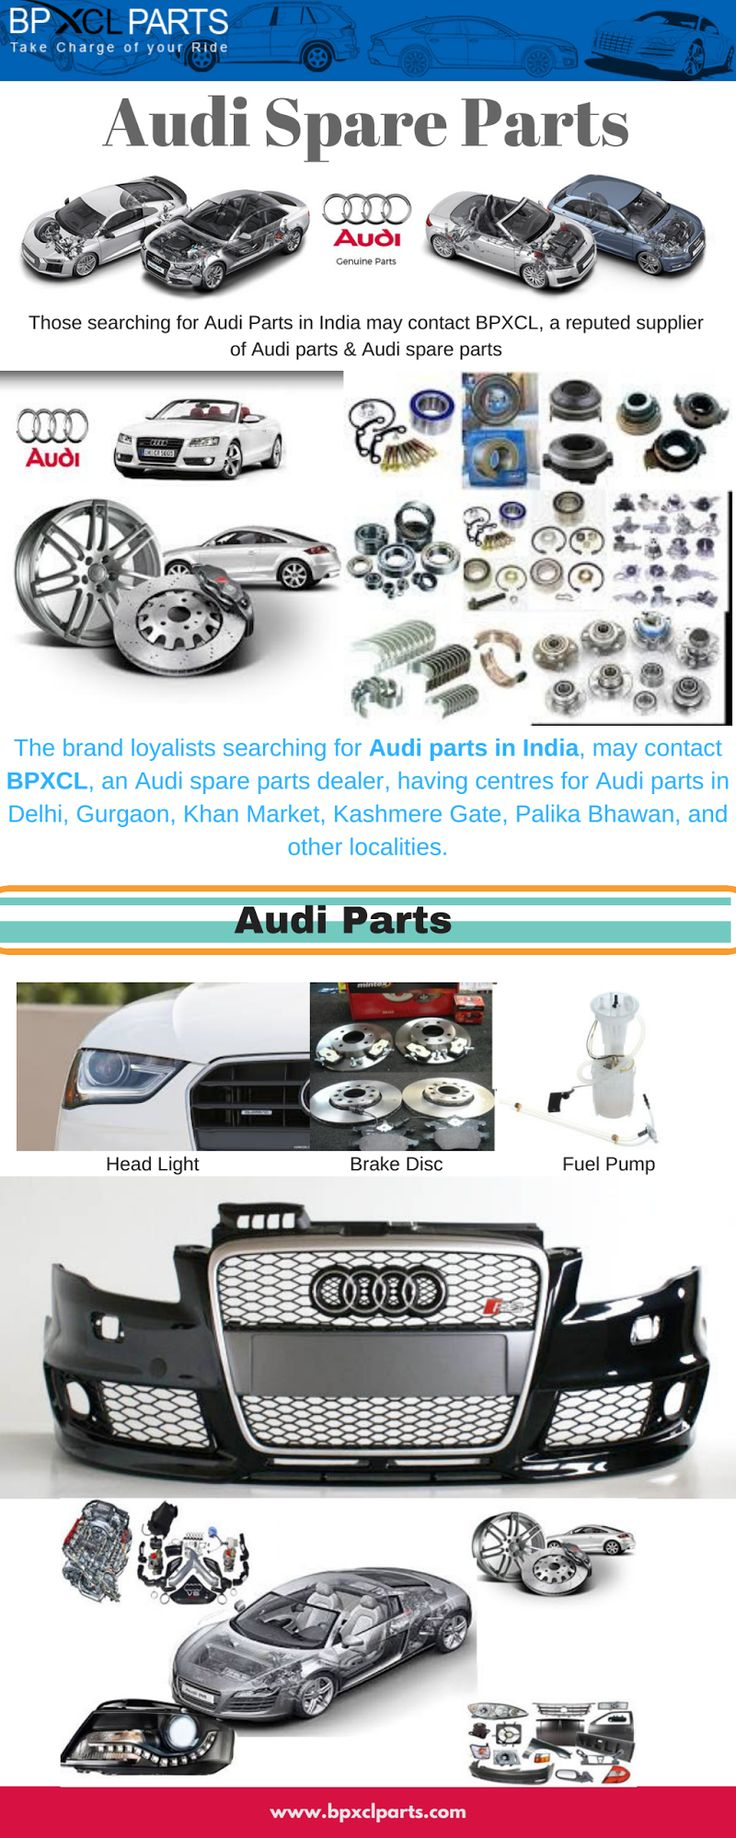 Those on the lookout for Audi A4 parts in India or Spare parts for Audi A4 in India may get in touch with BPXCL, a leading supplier of Spare parts for Audi A4.